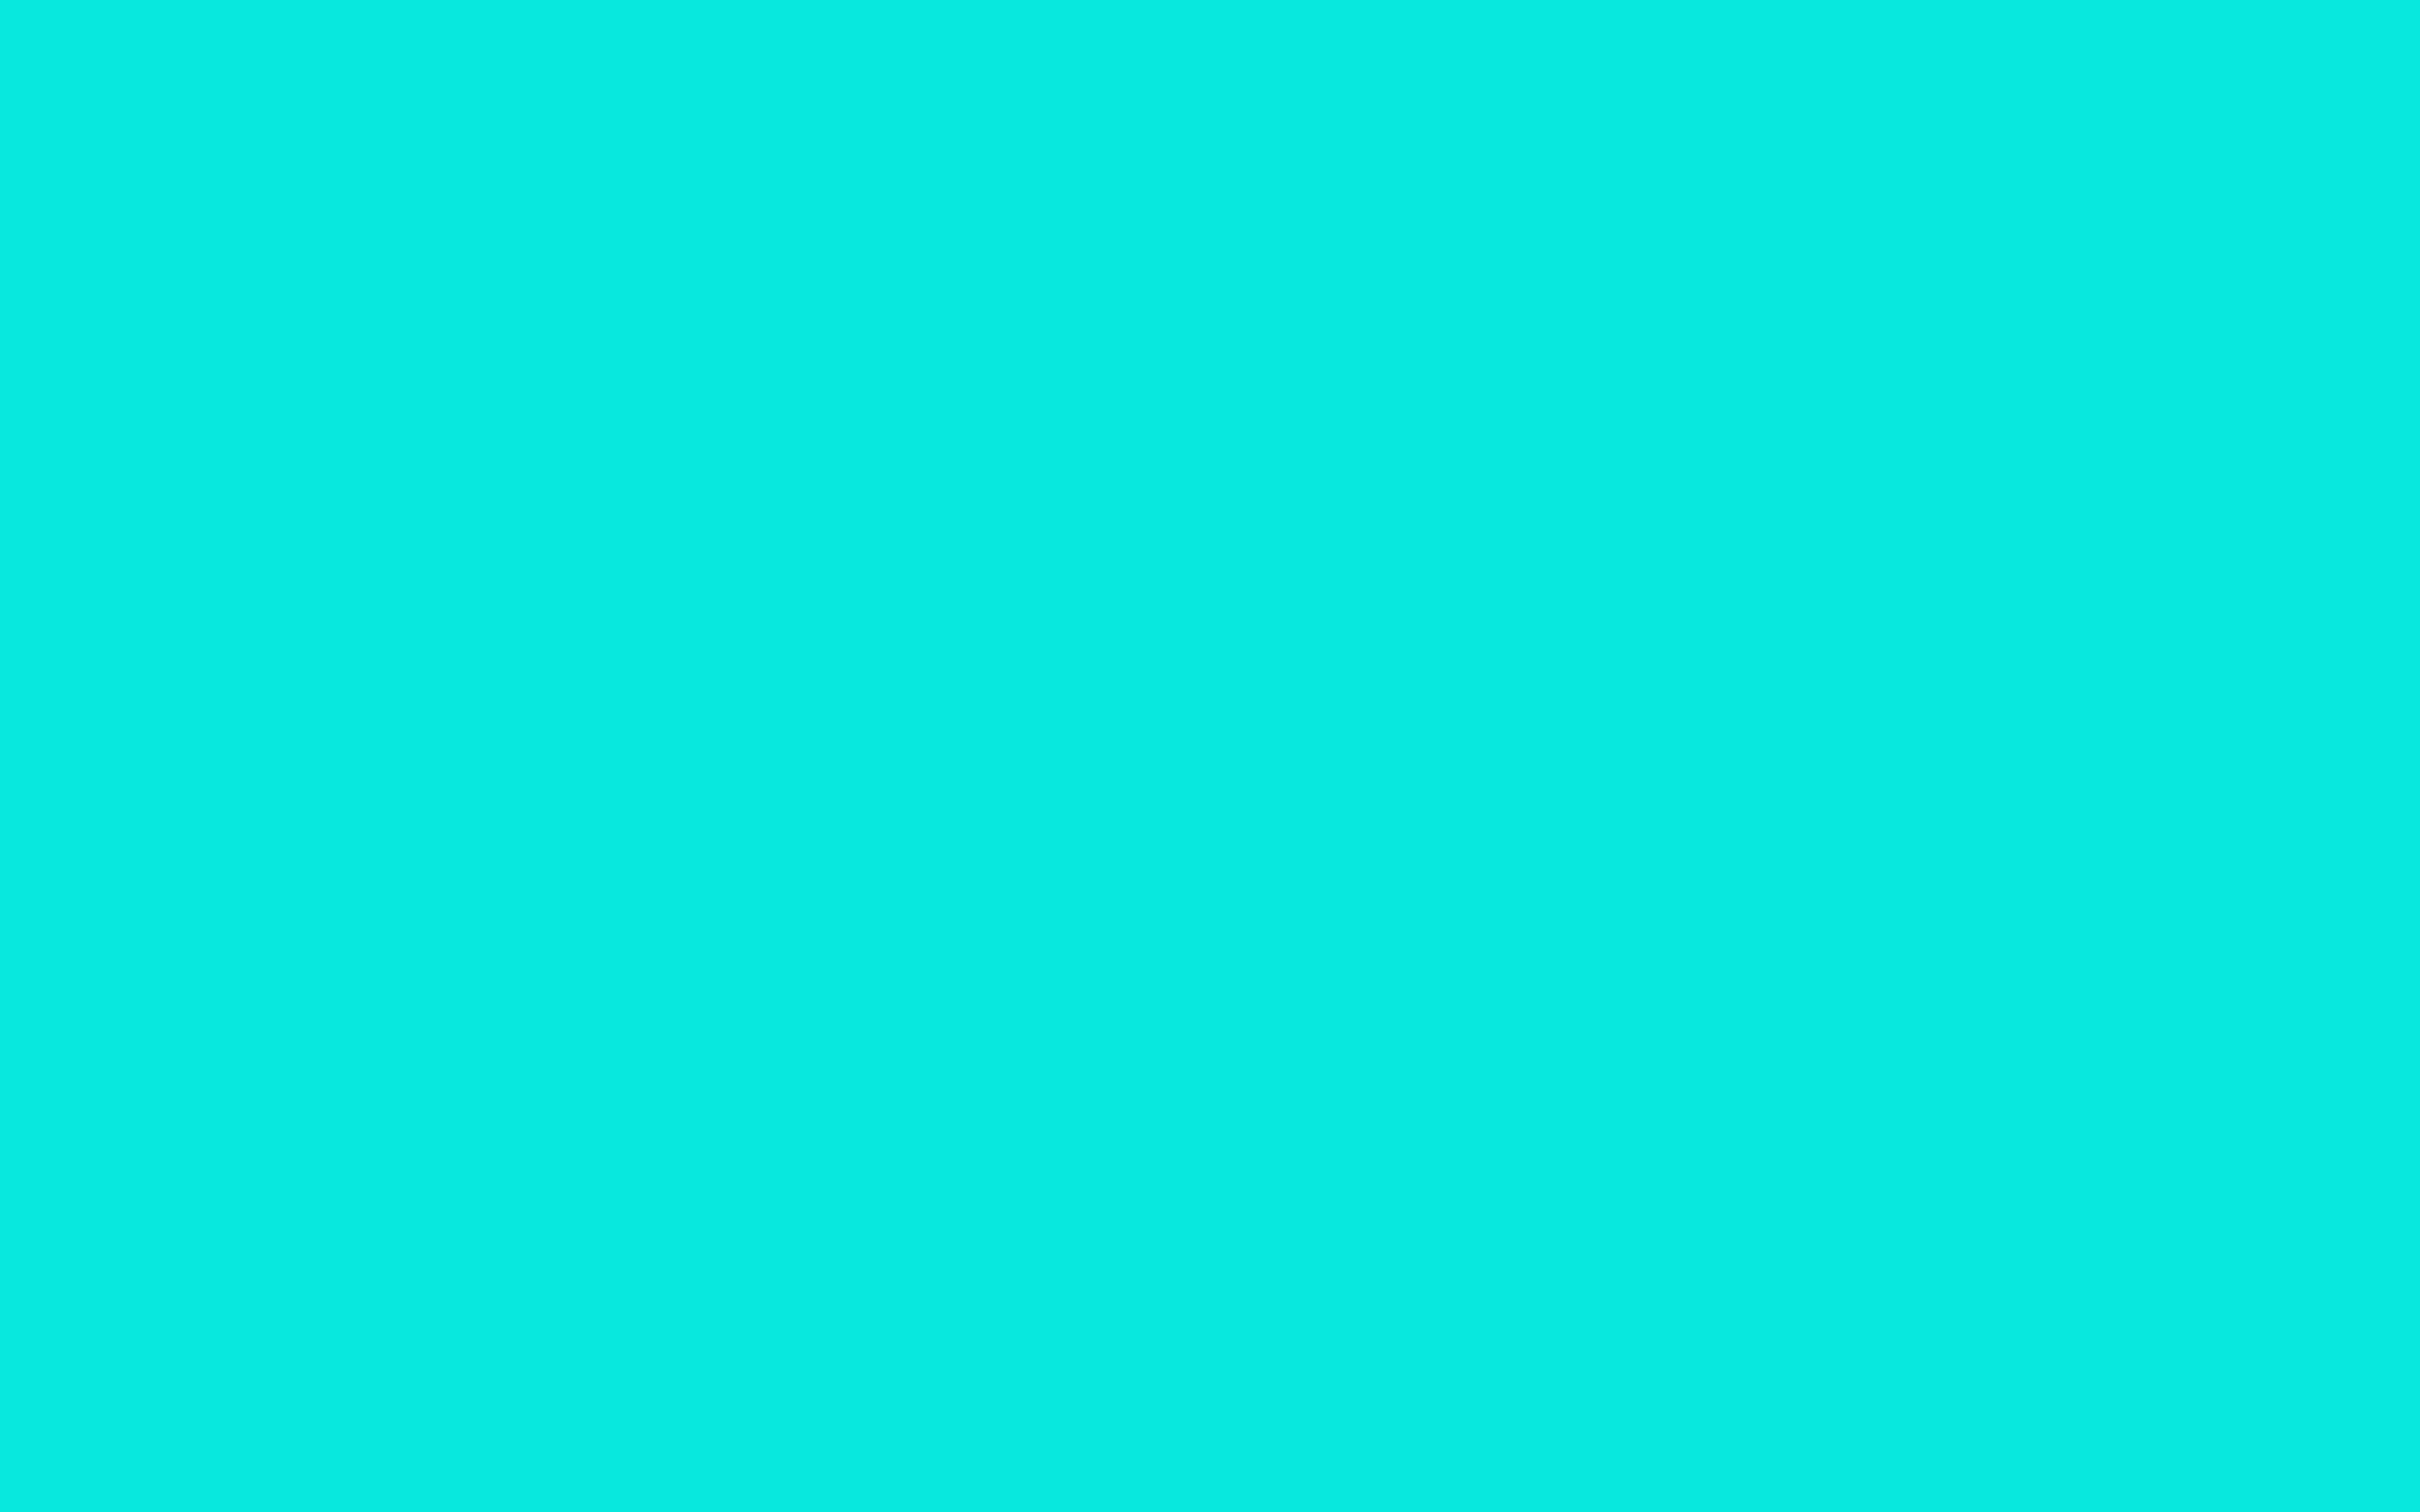 2880x1800 bright turquoise solid color backgroundjpg 28801800